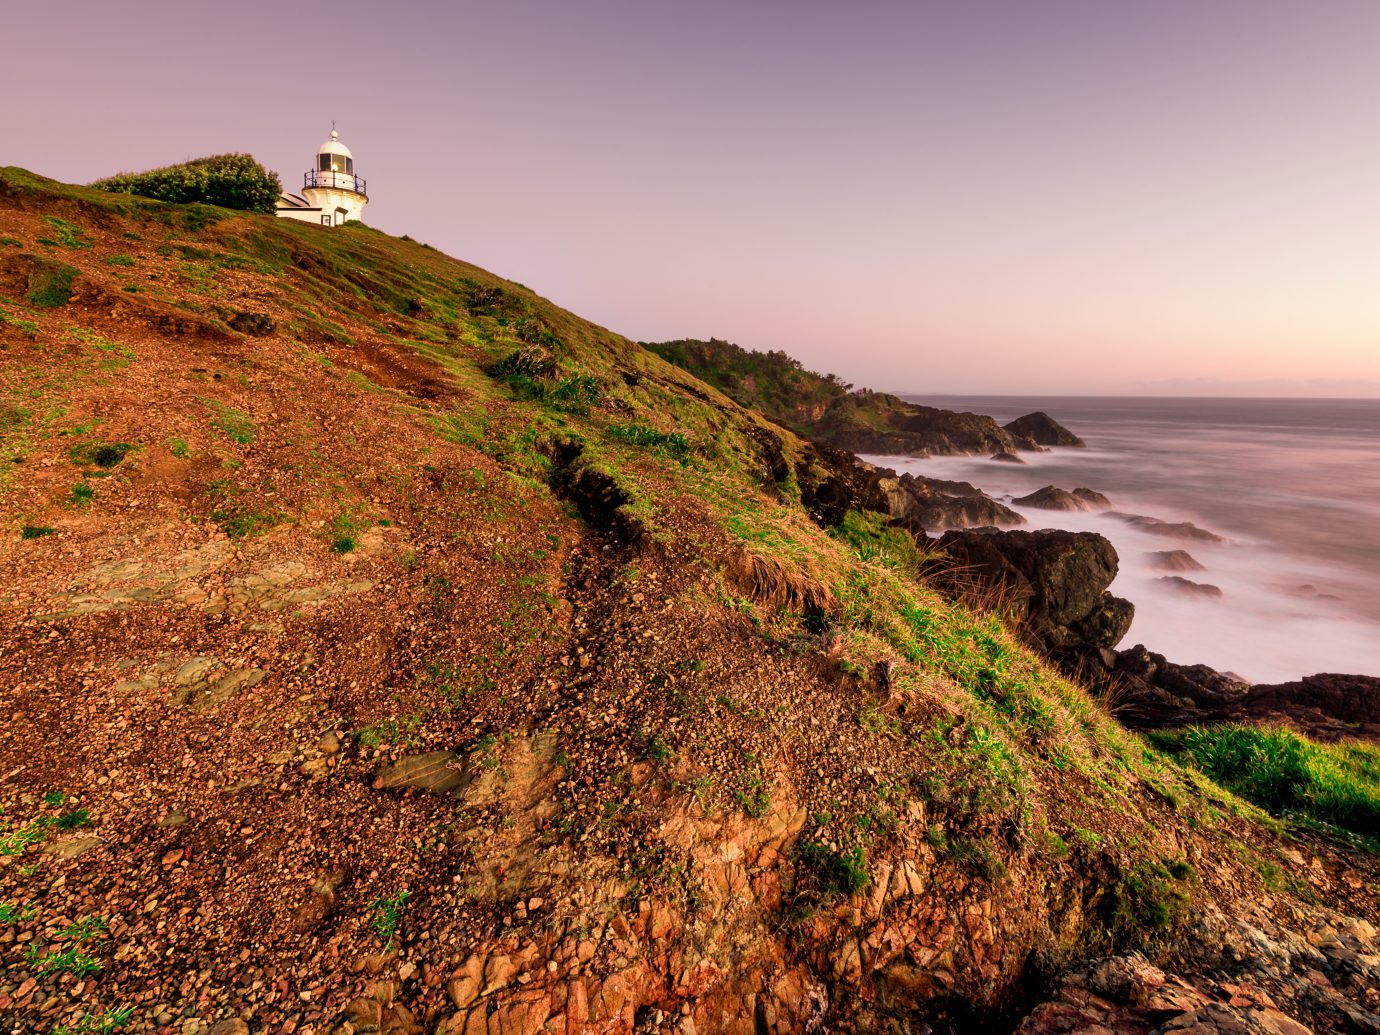 at Lighthouse Beach during sunrise - located in Port Macquarie